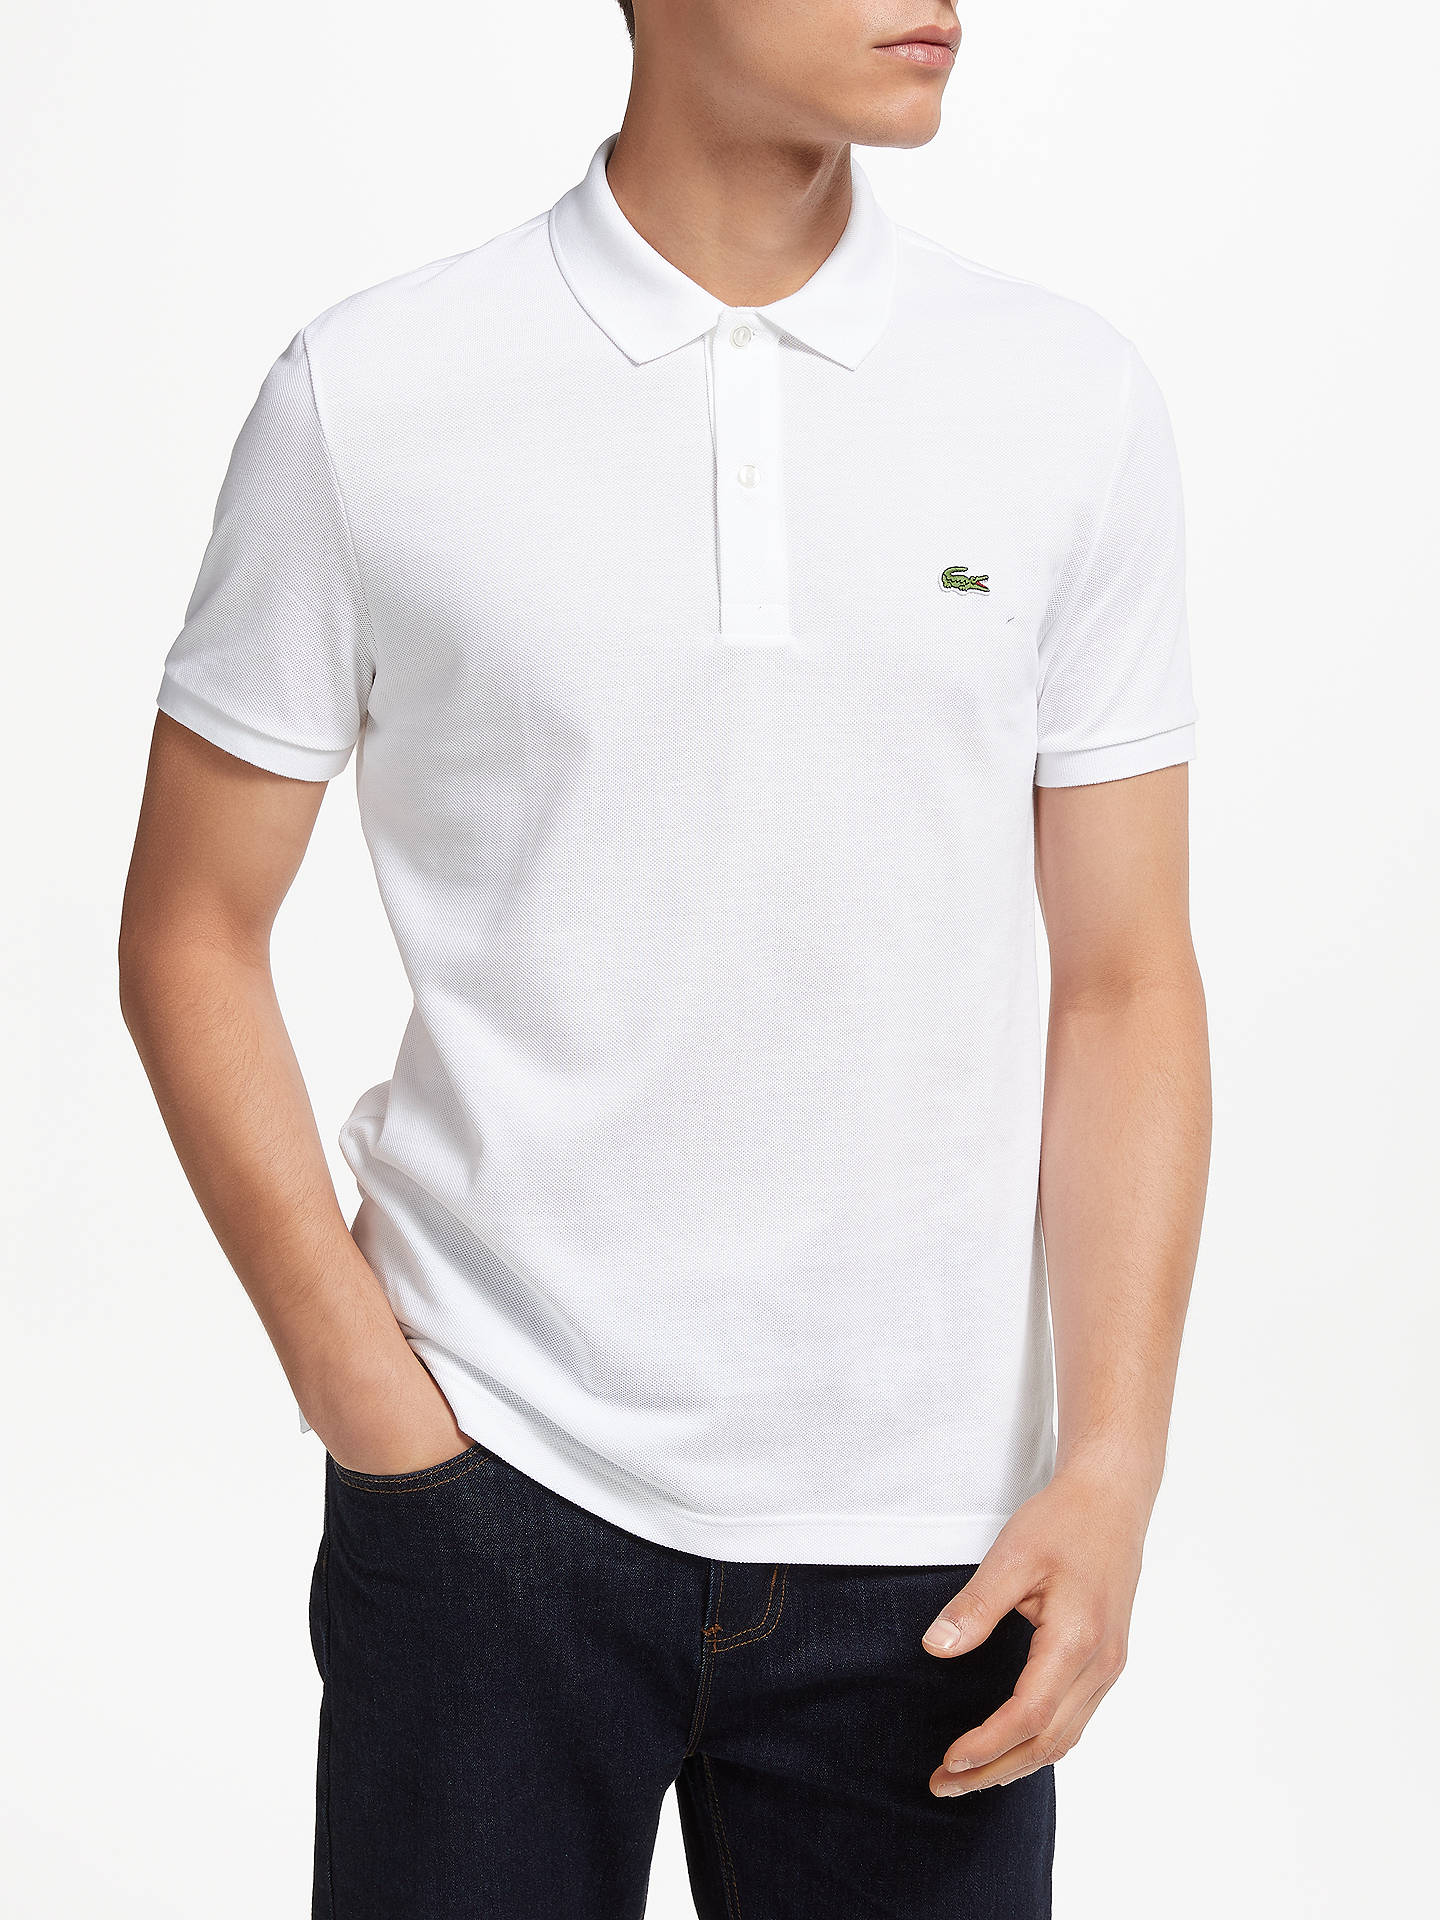 9d126d29 Lacoste Classic Slim Fit Short Sleeve Polo Shirt at John Lewis ...